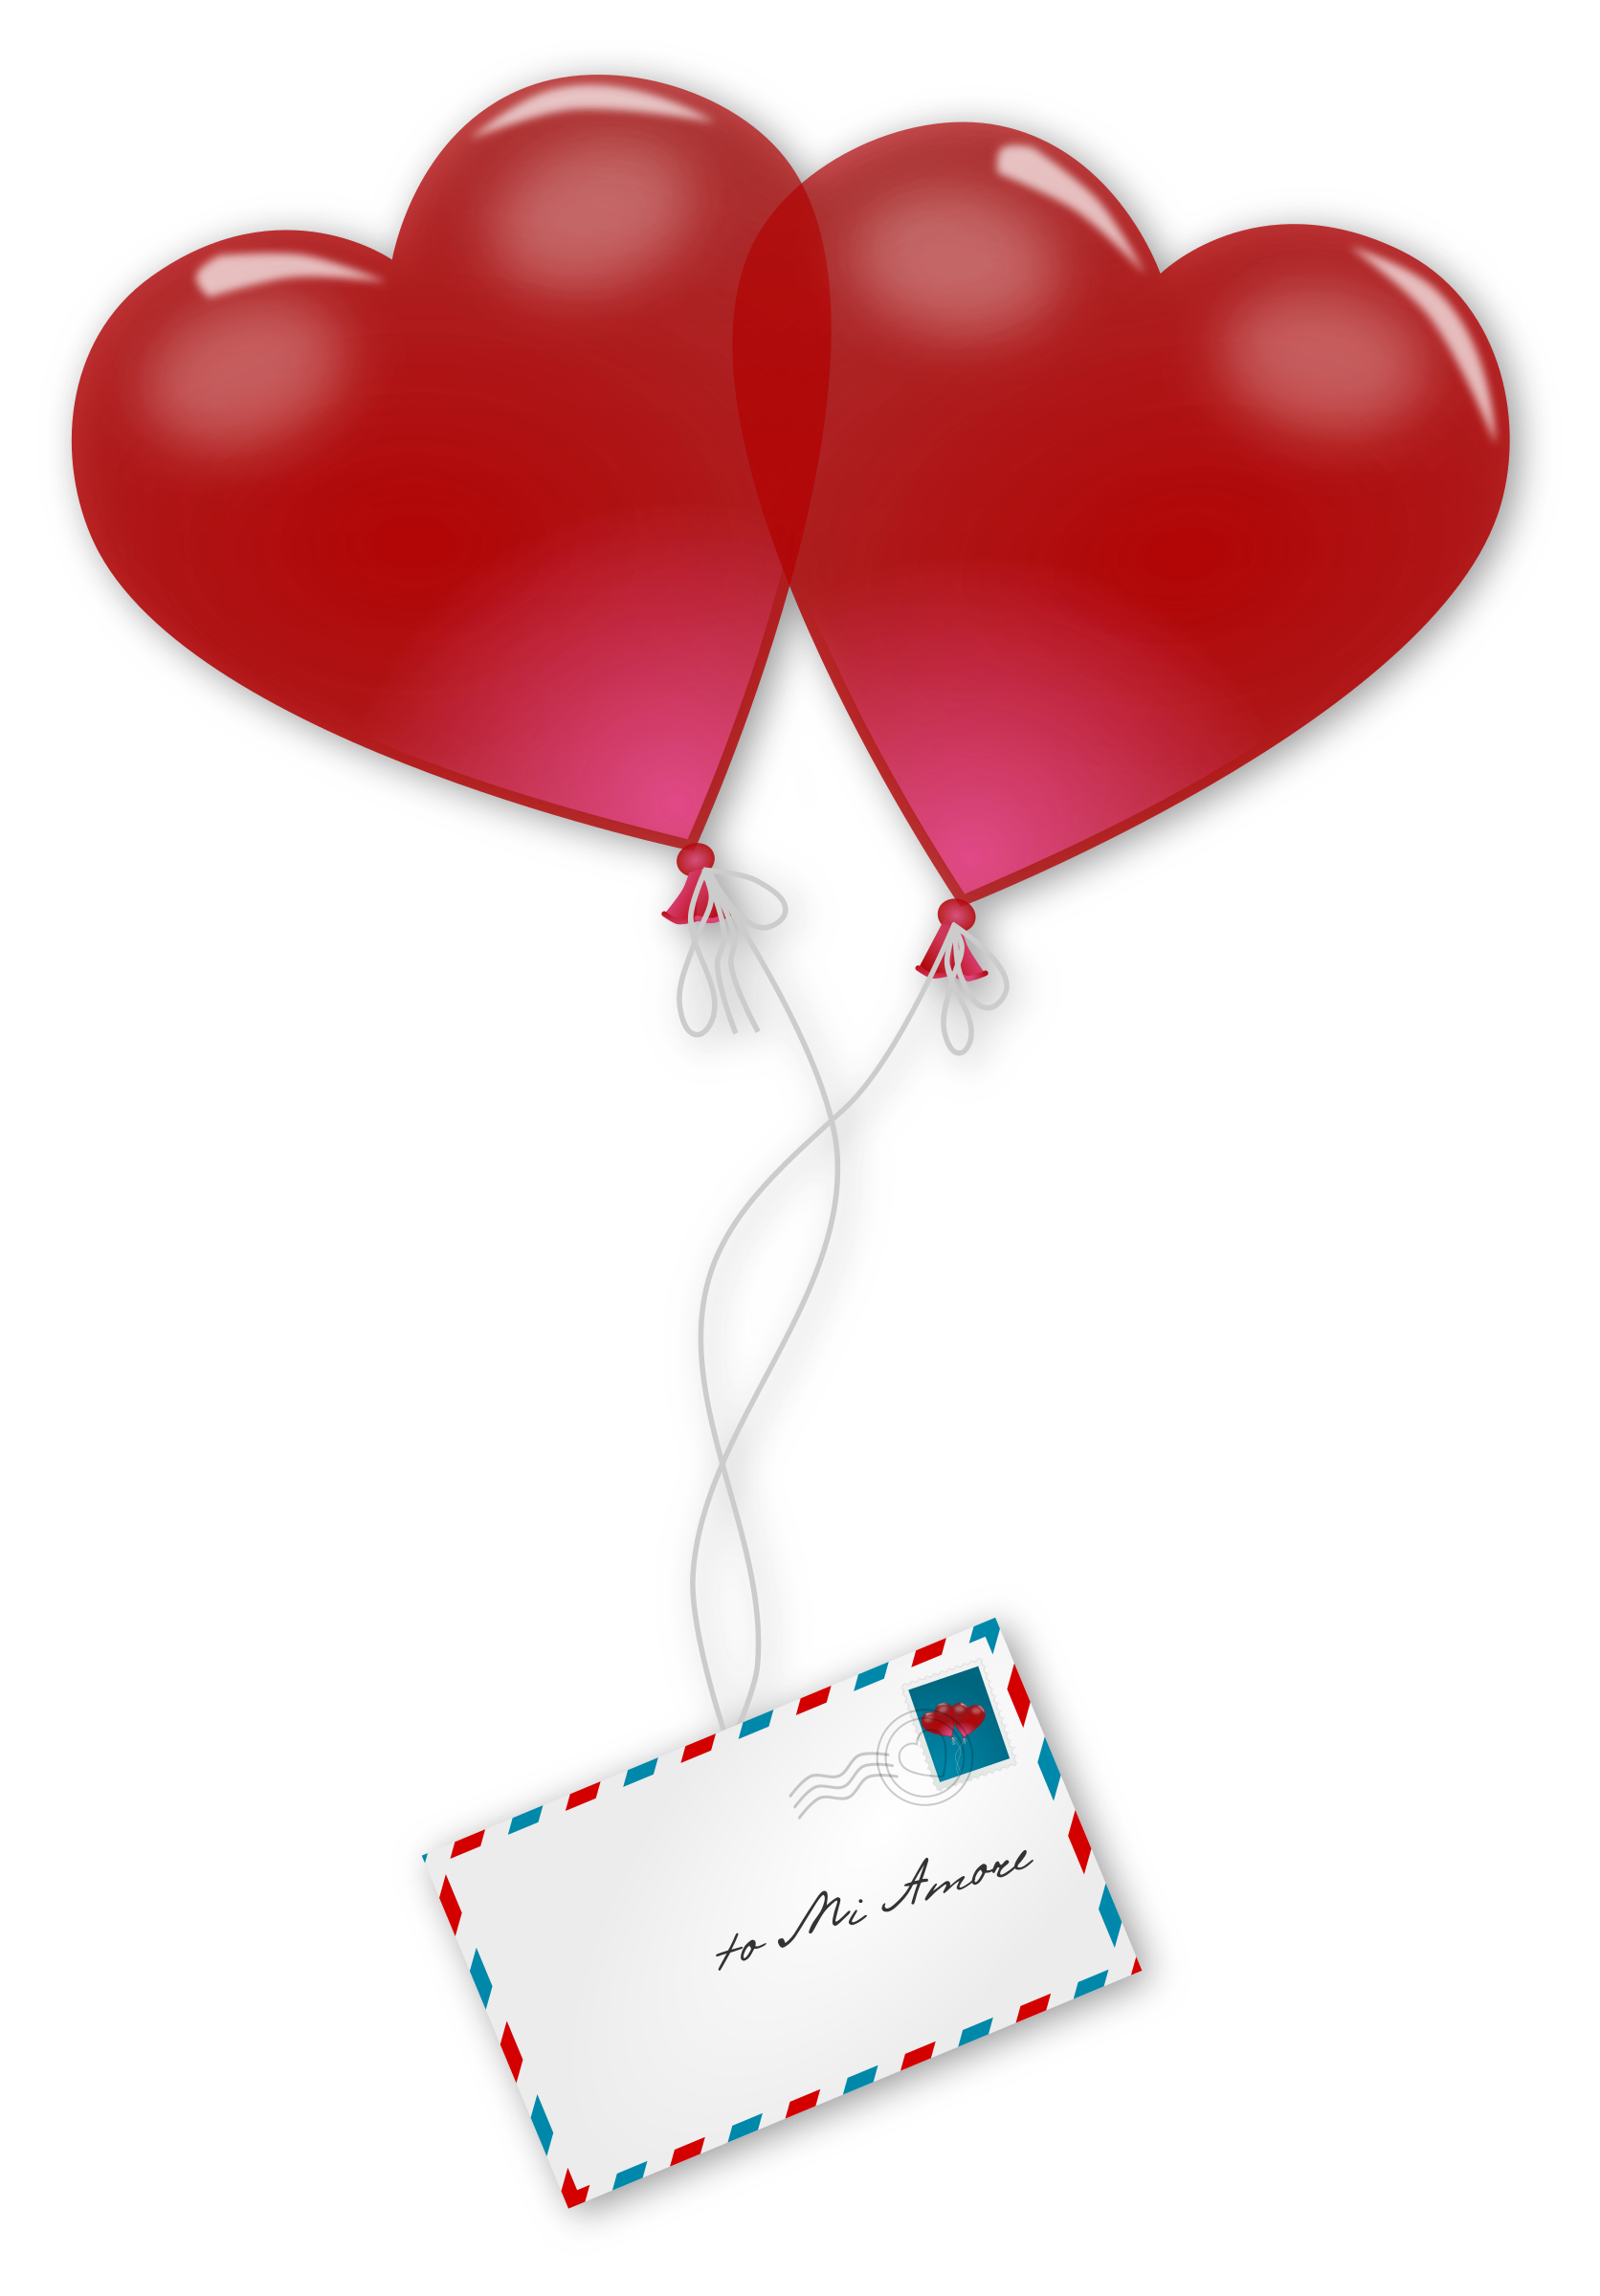 Day love is in. Mail clipart valentines